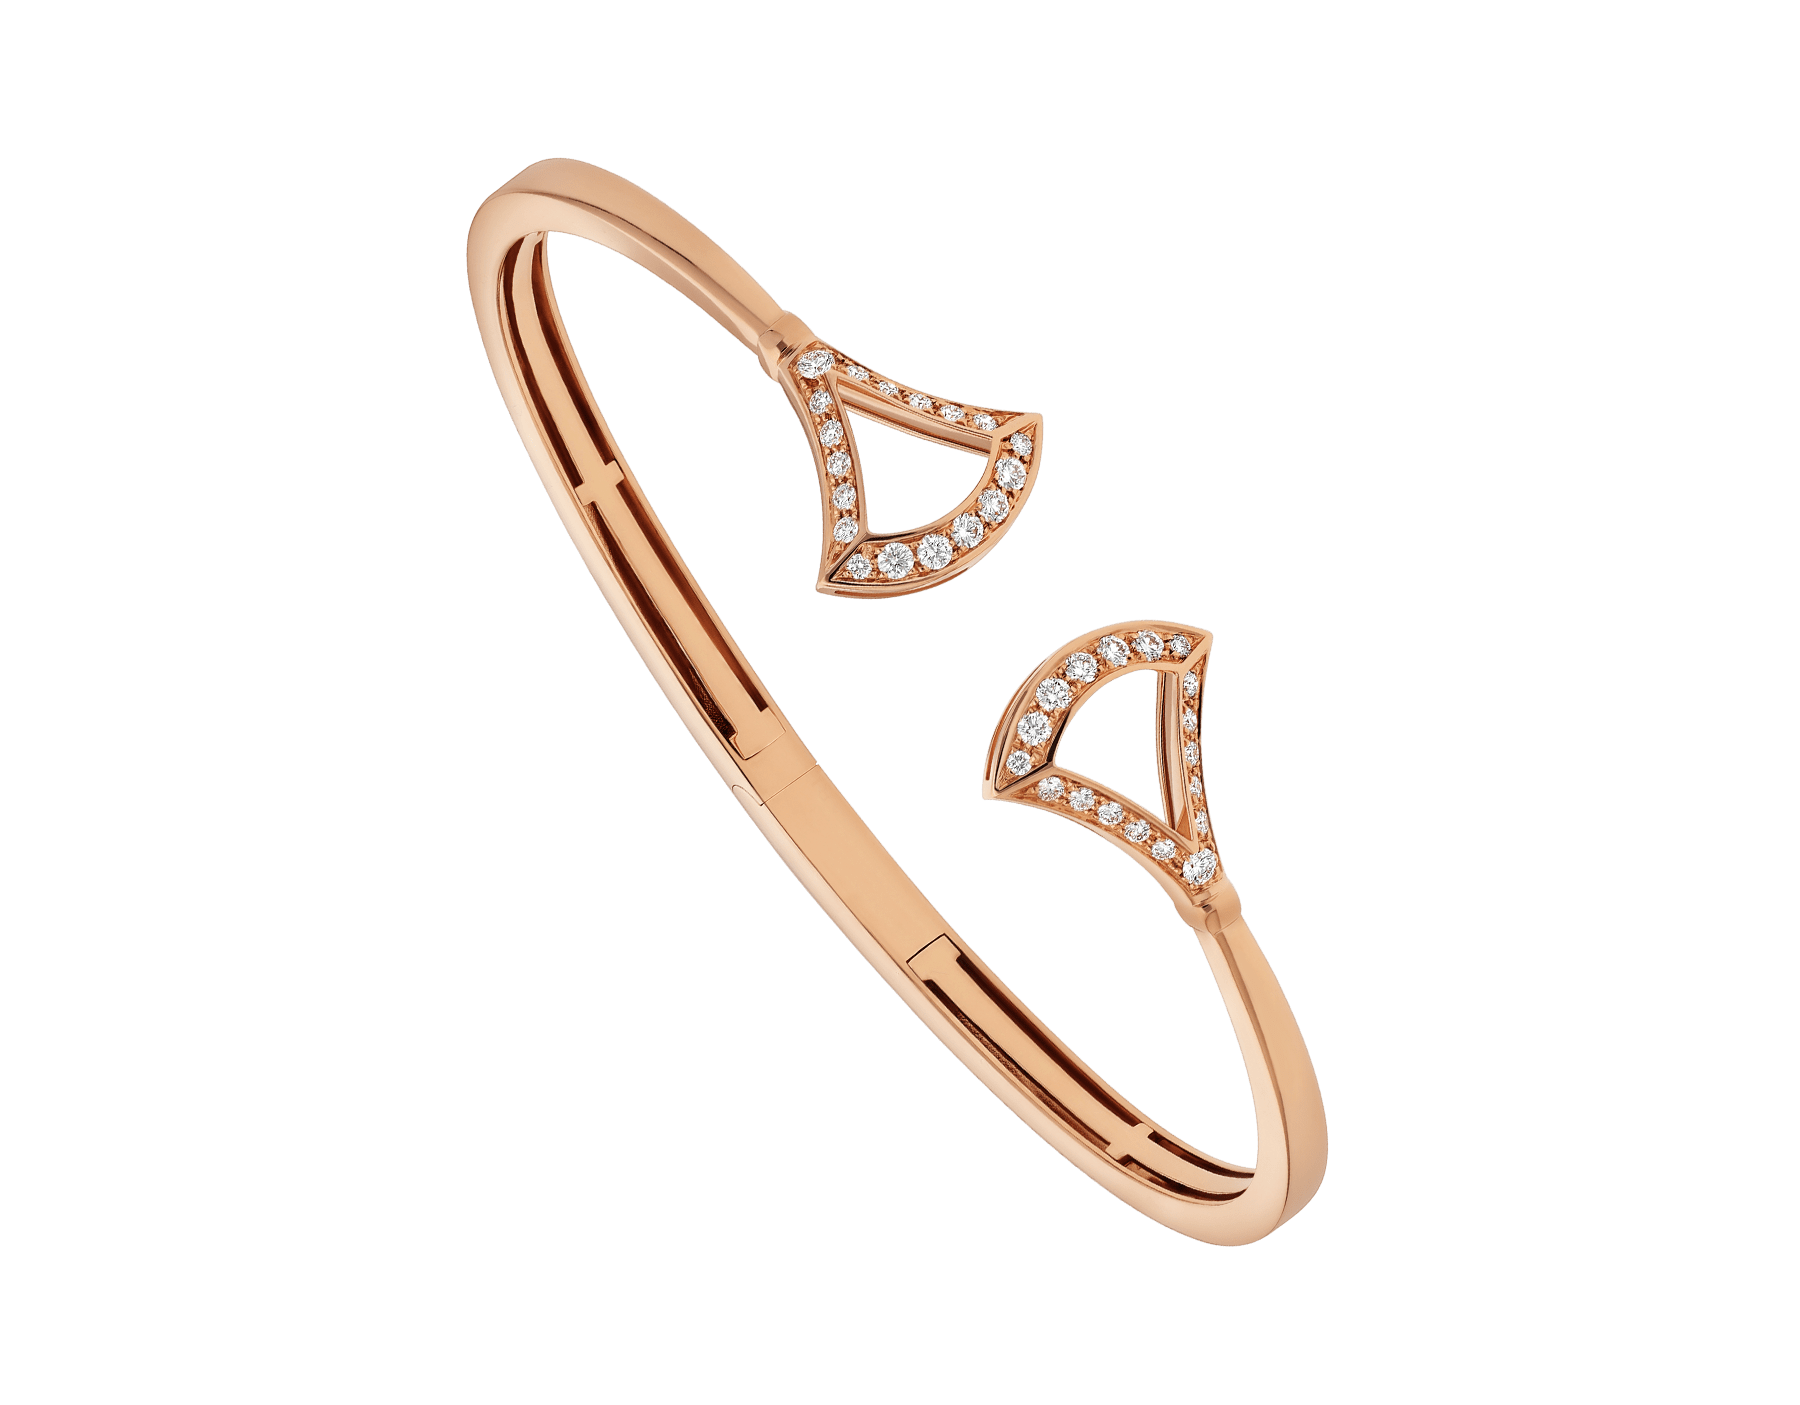 DIVAS' DREAM openwork 18 kt rose gold bracelet set with pavé diamonds. BR858387 image 1